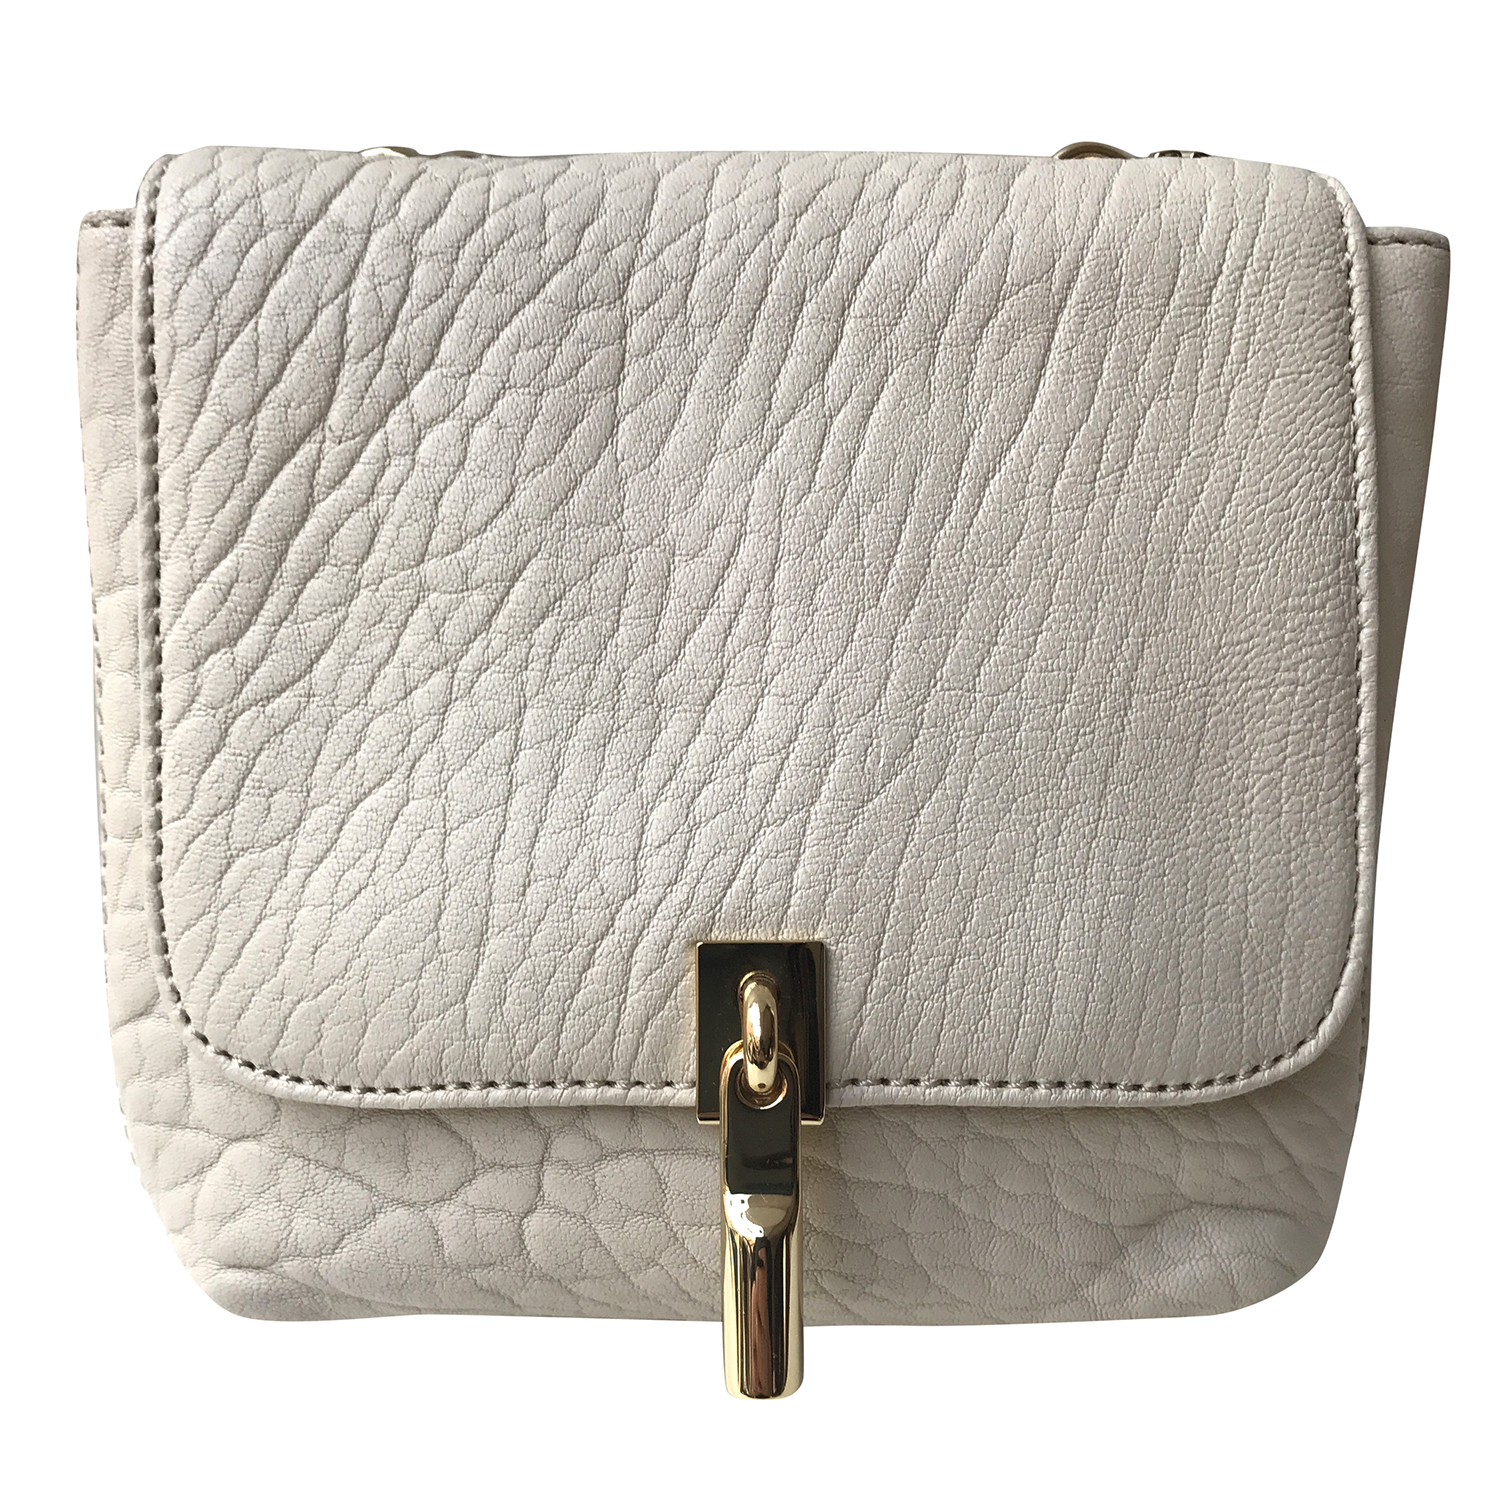 Elizabeth and James Cynnie Mini Double Shoulder Bag Brand New